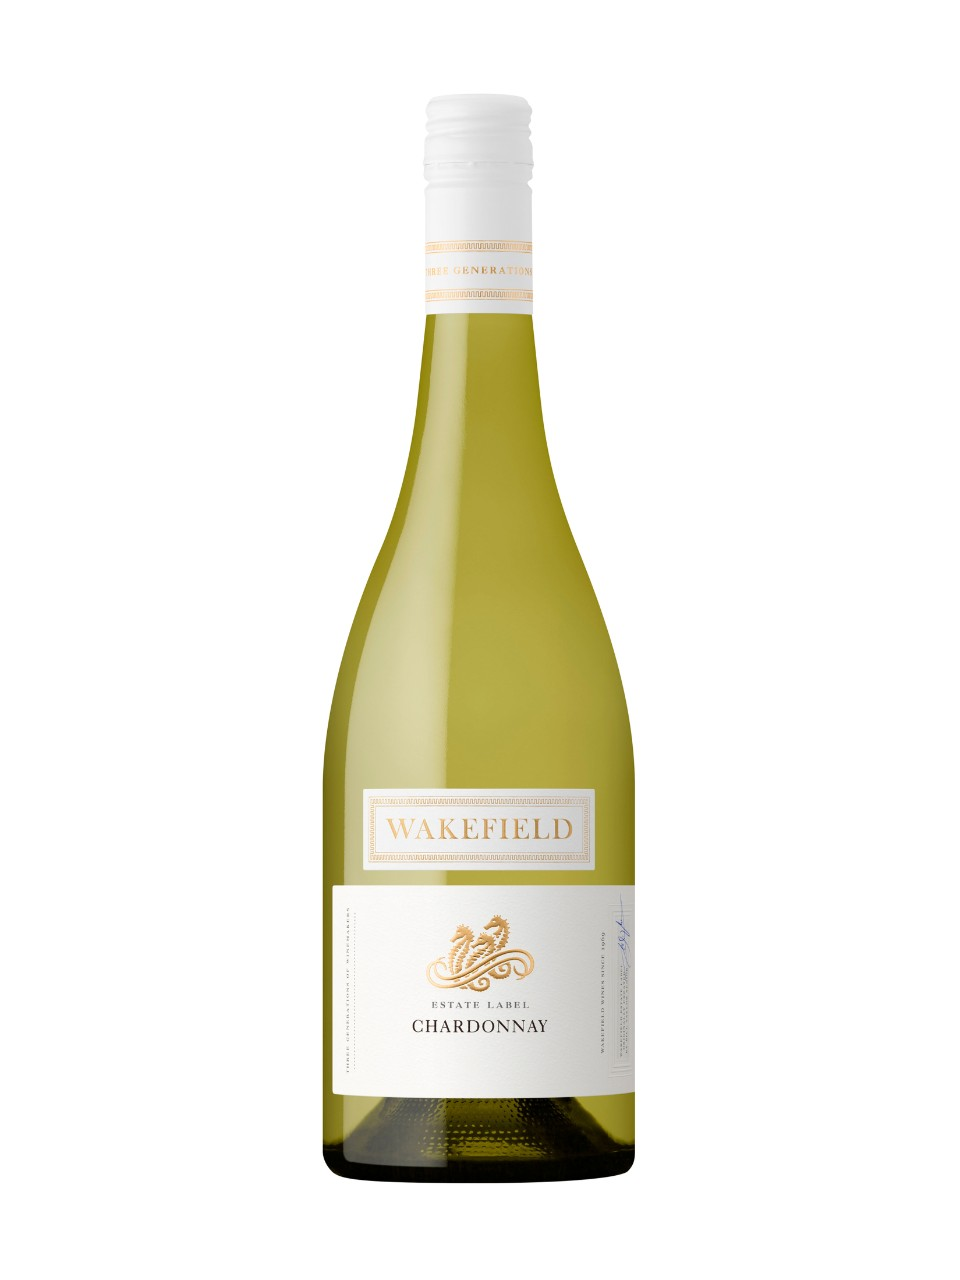 Wakefield Clare Valley Estate Chardonnay 2019 from LCBO